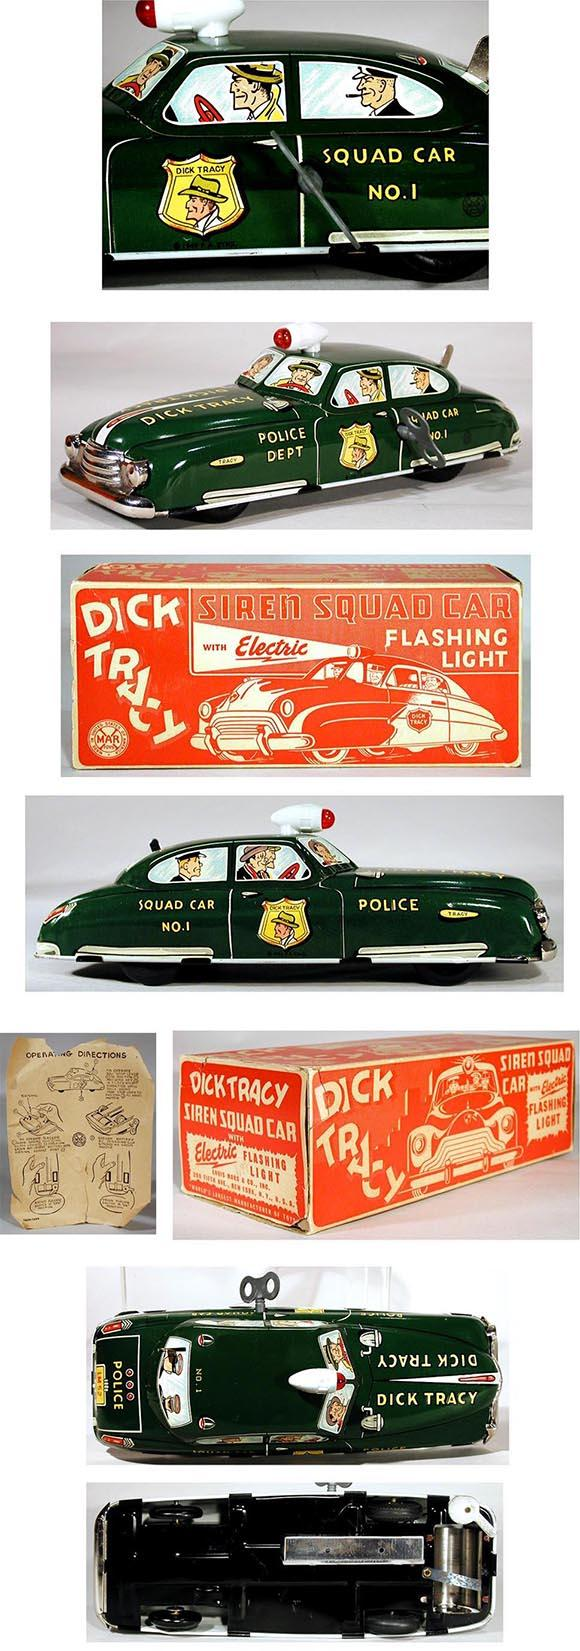 1949 Marx, Dick Tracy Siren Squad Car with Electric Flashing Light in Original Box #2